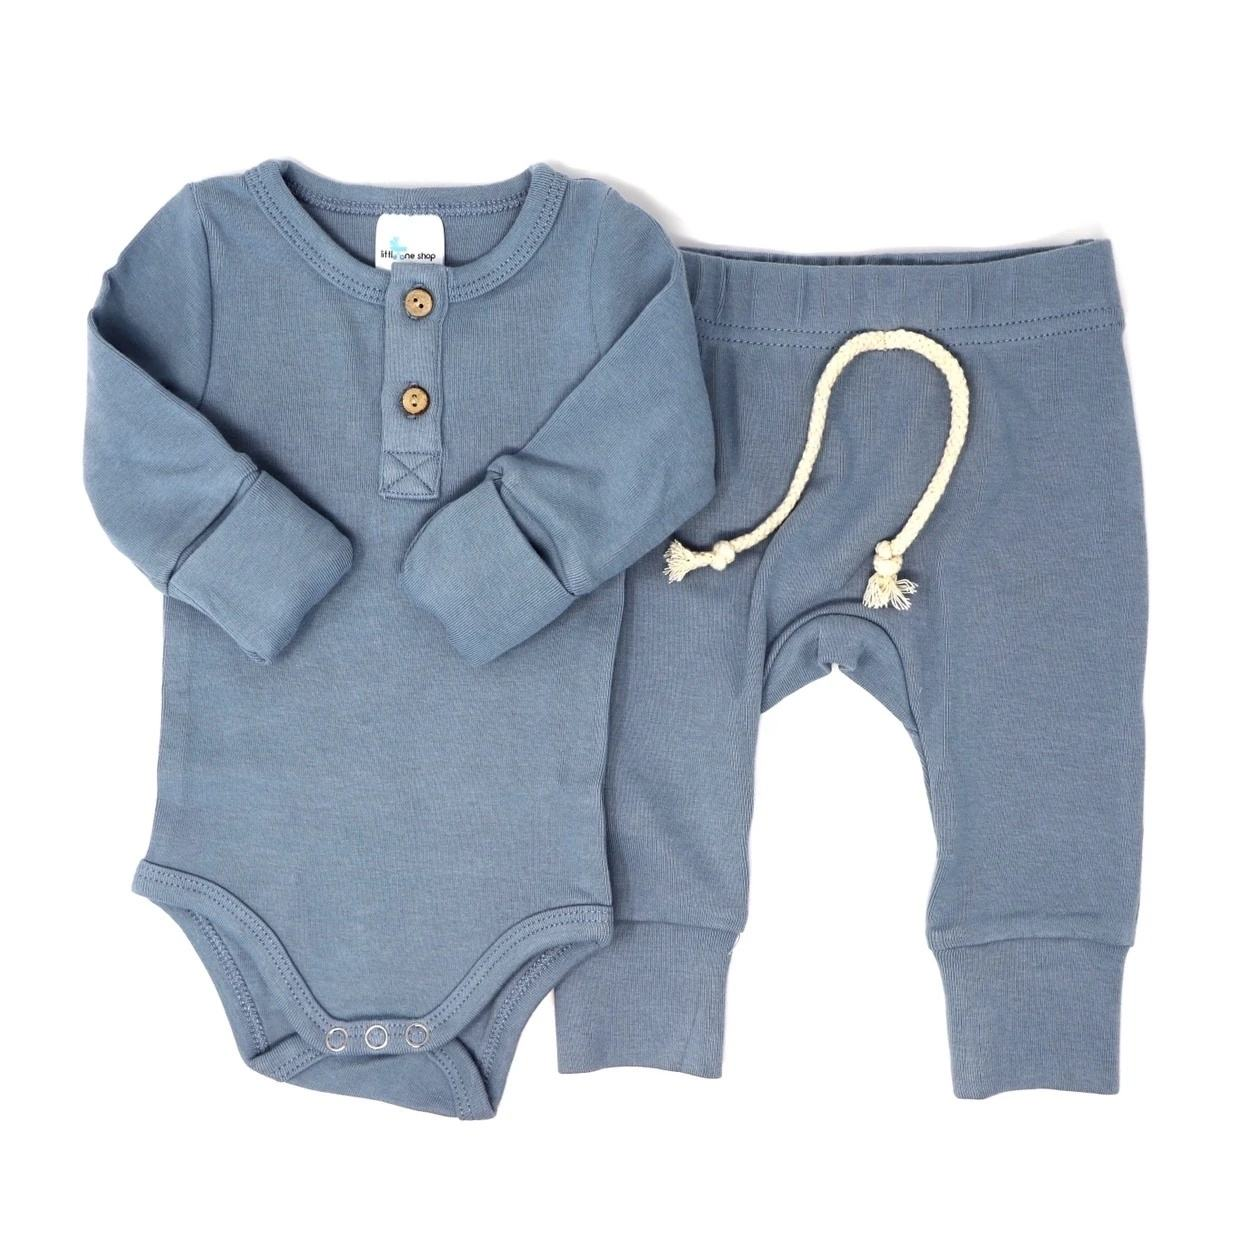 High Quality Plain Dyed 95% Bamboo 5% Spandex Long Sleeve Baby Pajamas Set